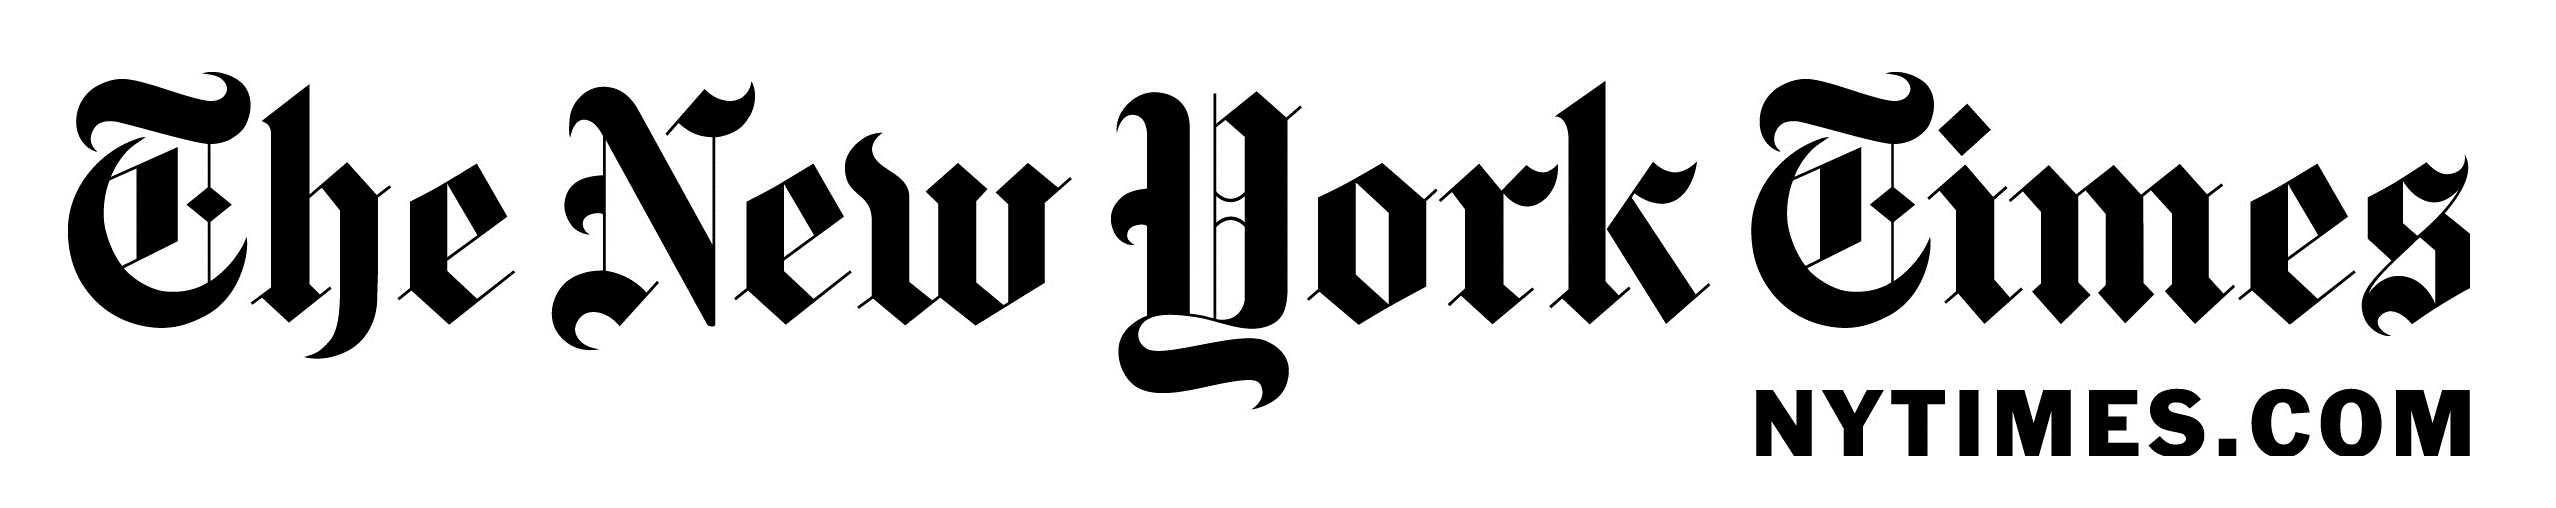 Bypassing The Ny Times Paywall And Read Ny Times Content For Free